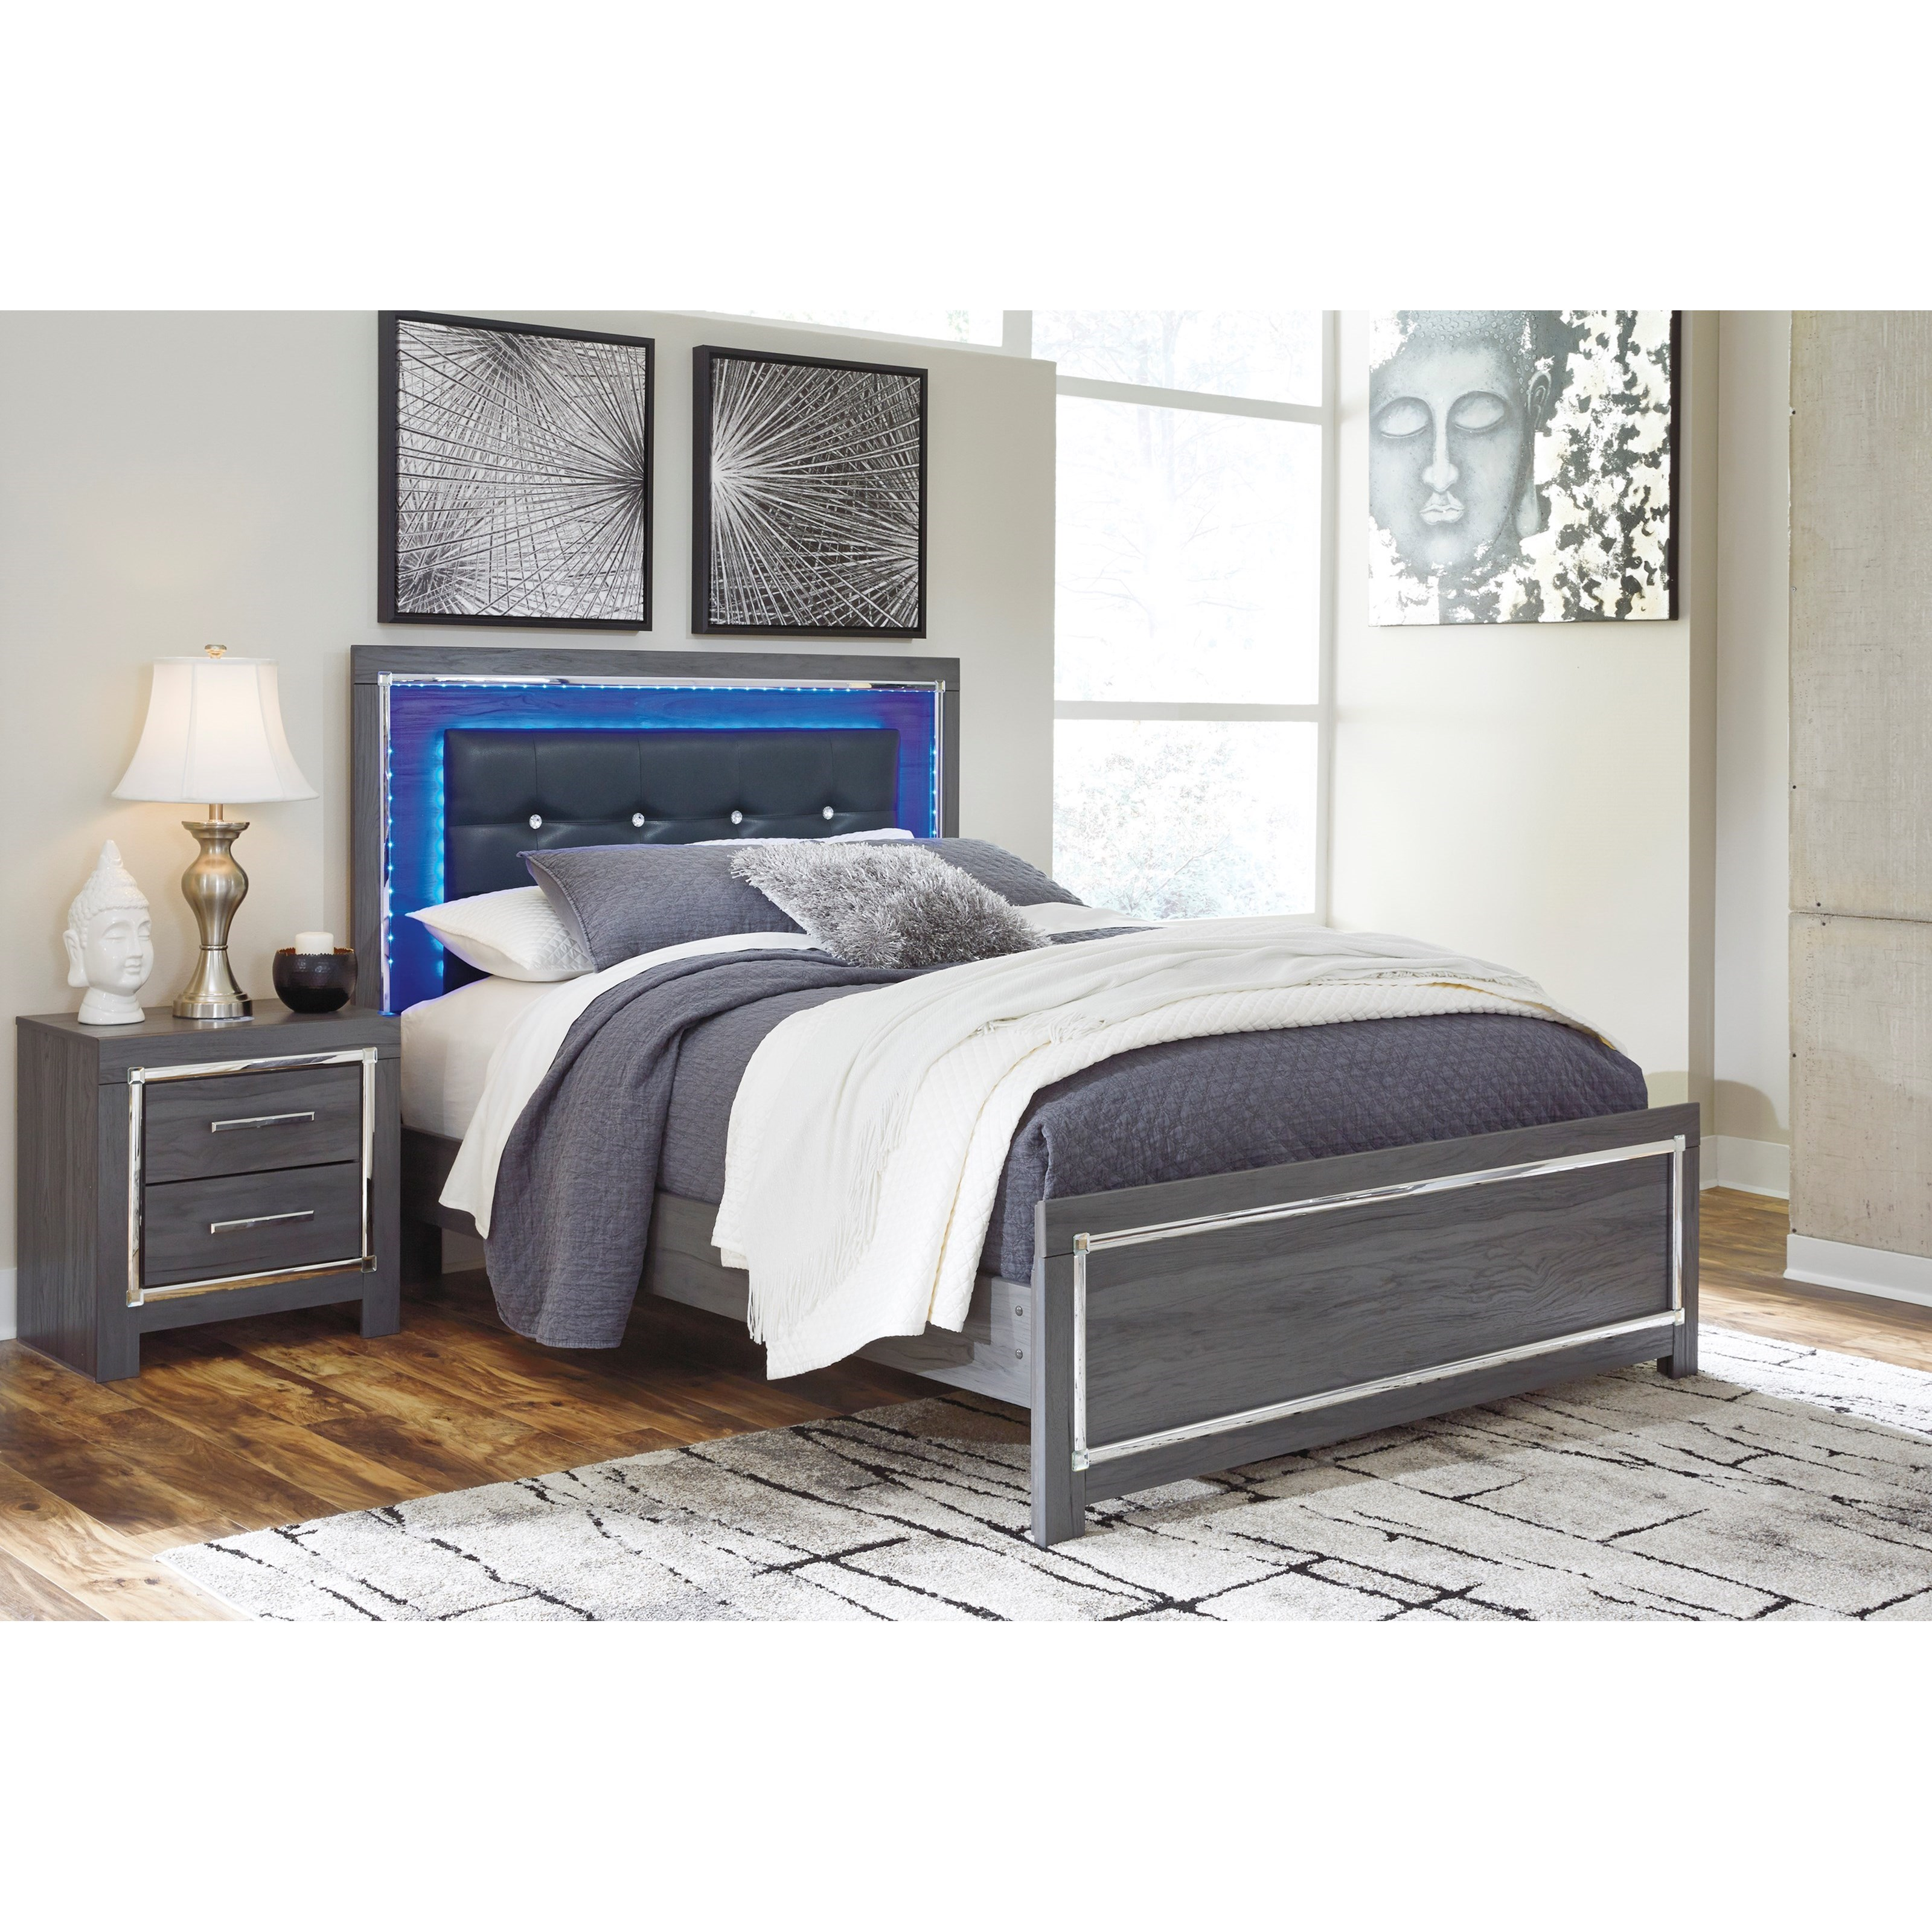 Signature Design By Ashley Lodana Glam Full Upholstered Bed With Color Changing Led Lighting